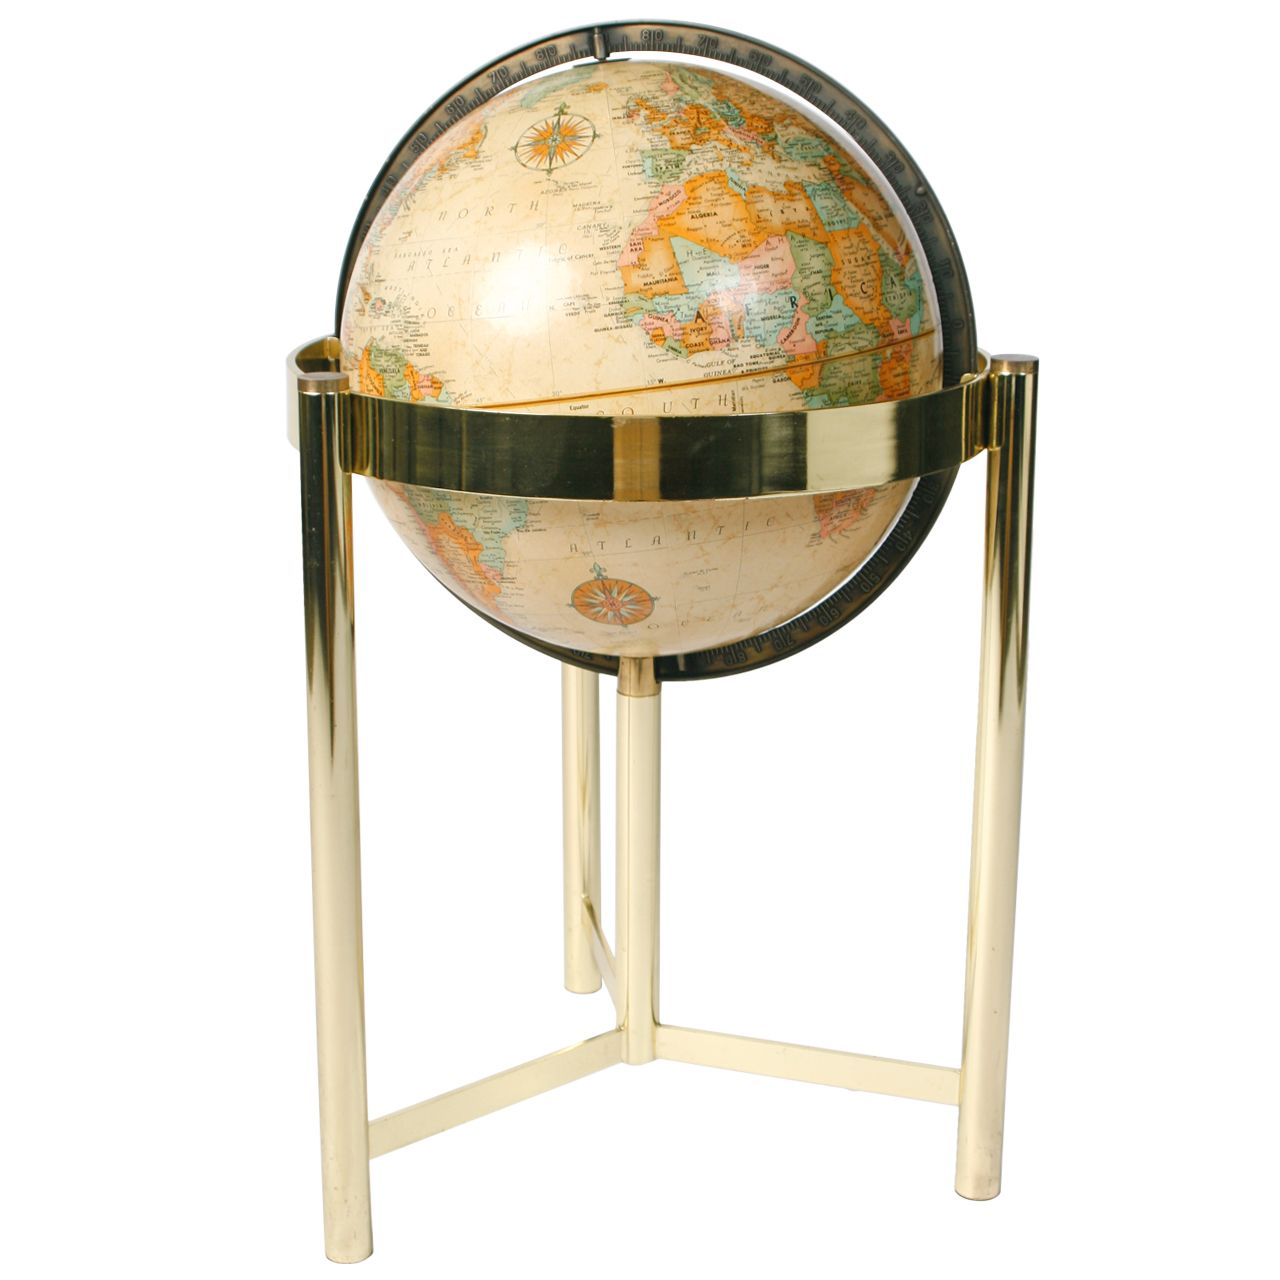 art stand bar product shop globes photo floors zeus floor with shipping globe tripod by to usa large zoffoli free